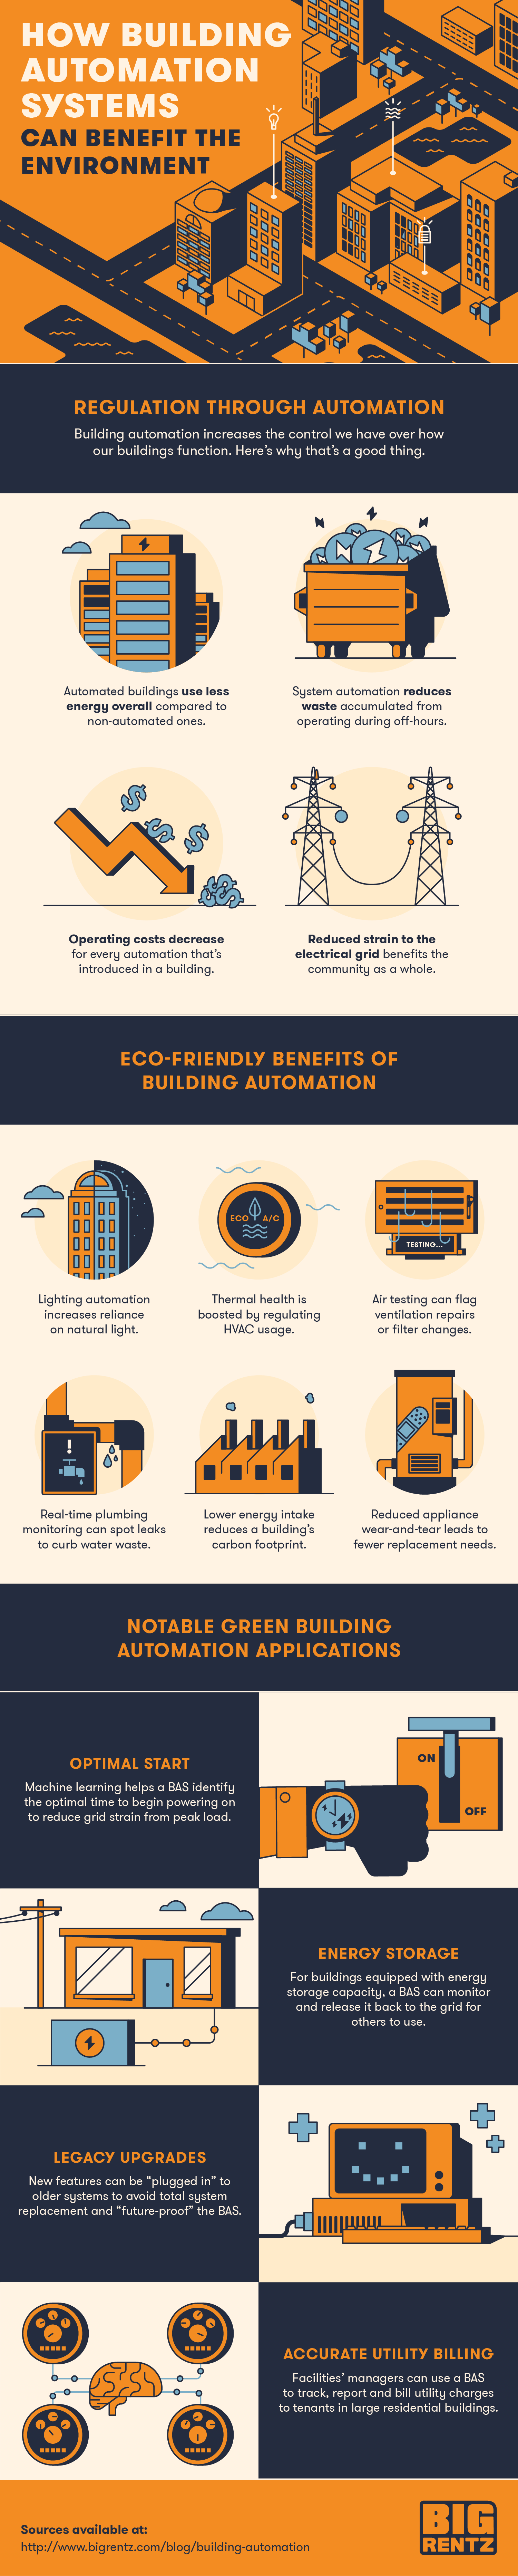 Infographic describing the environmental benefits of building automation